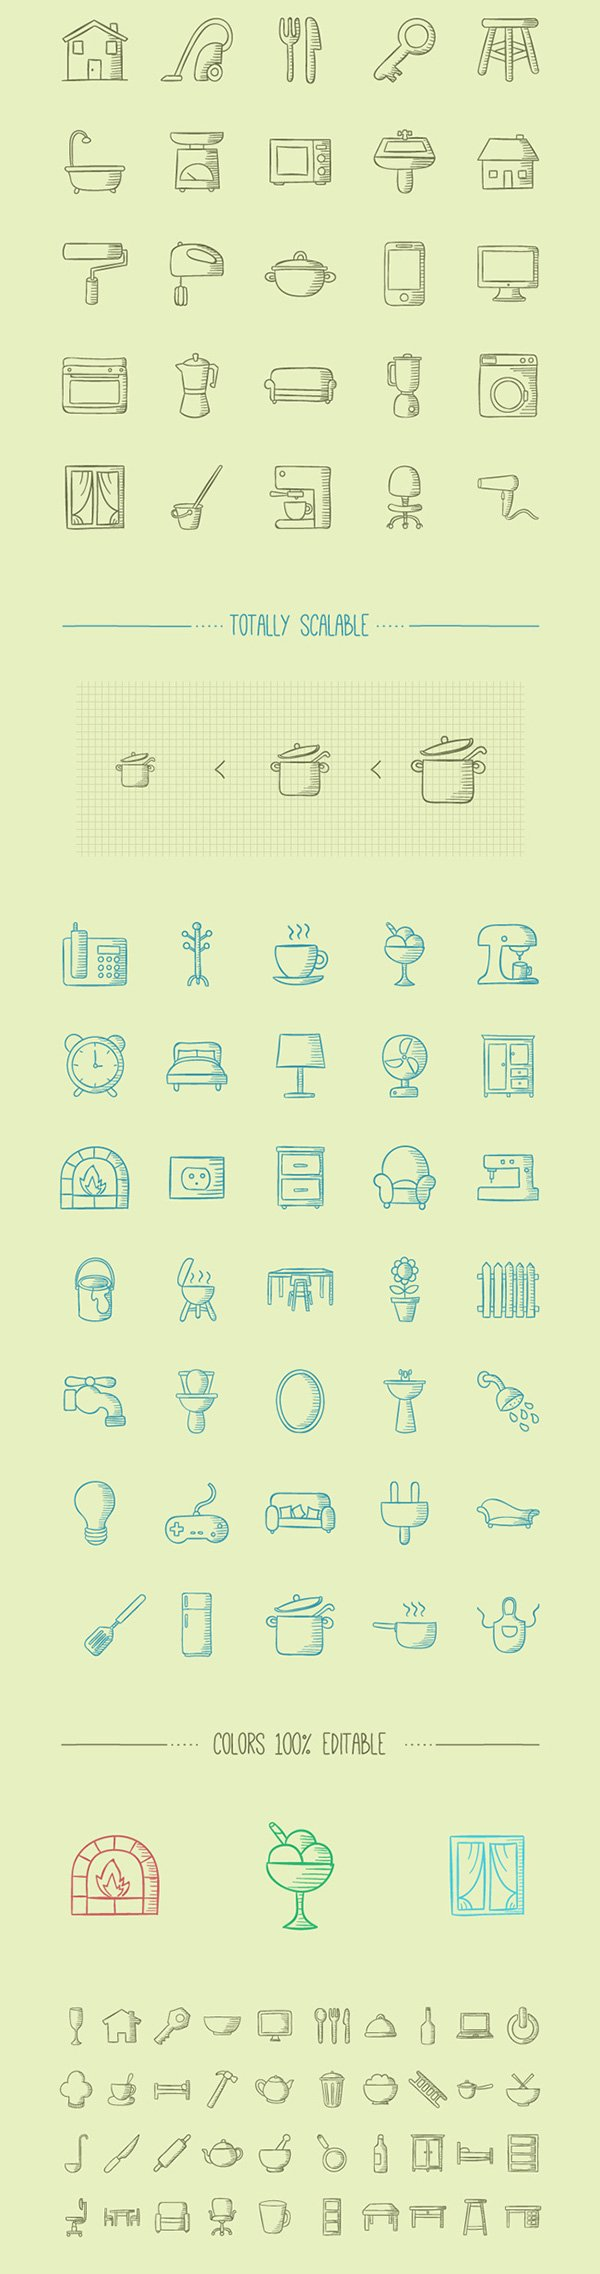 100 Handmade Icons About Home Stuff (exclusive)